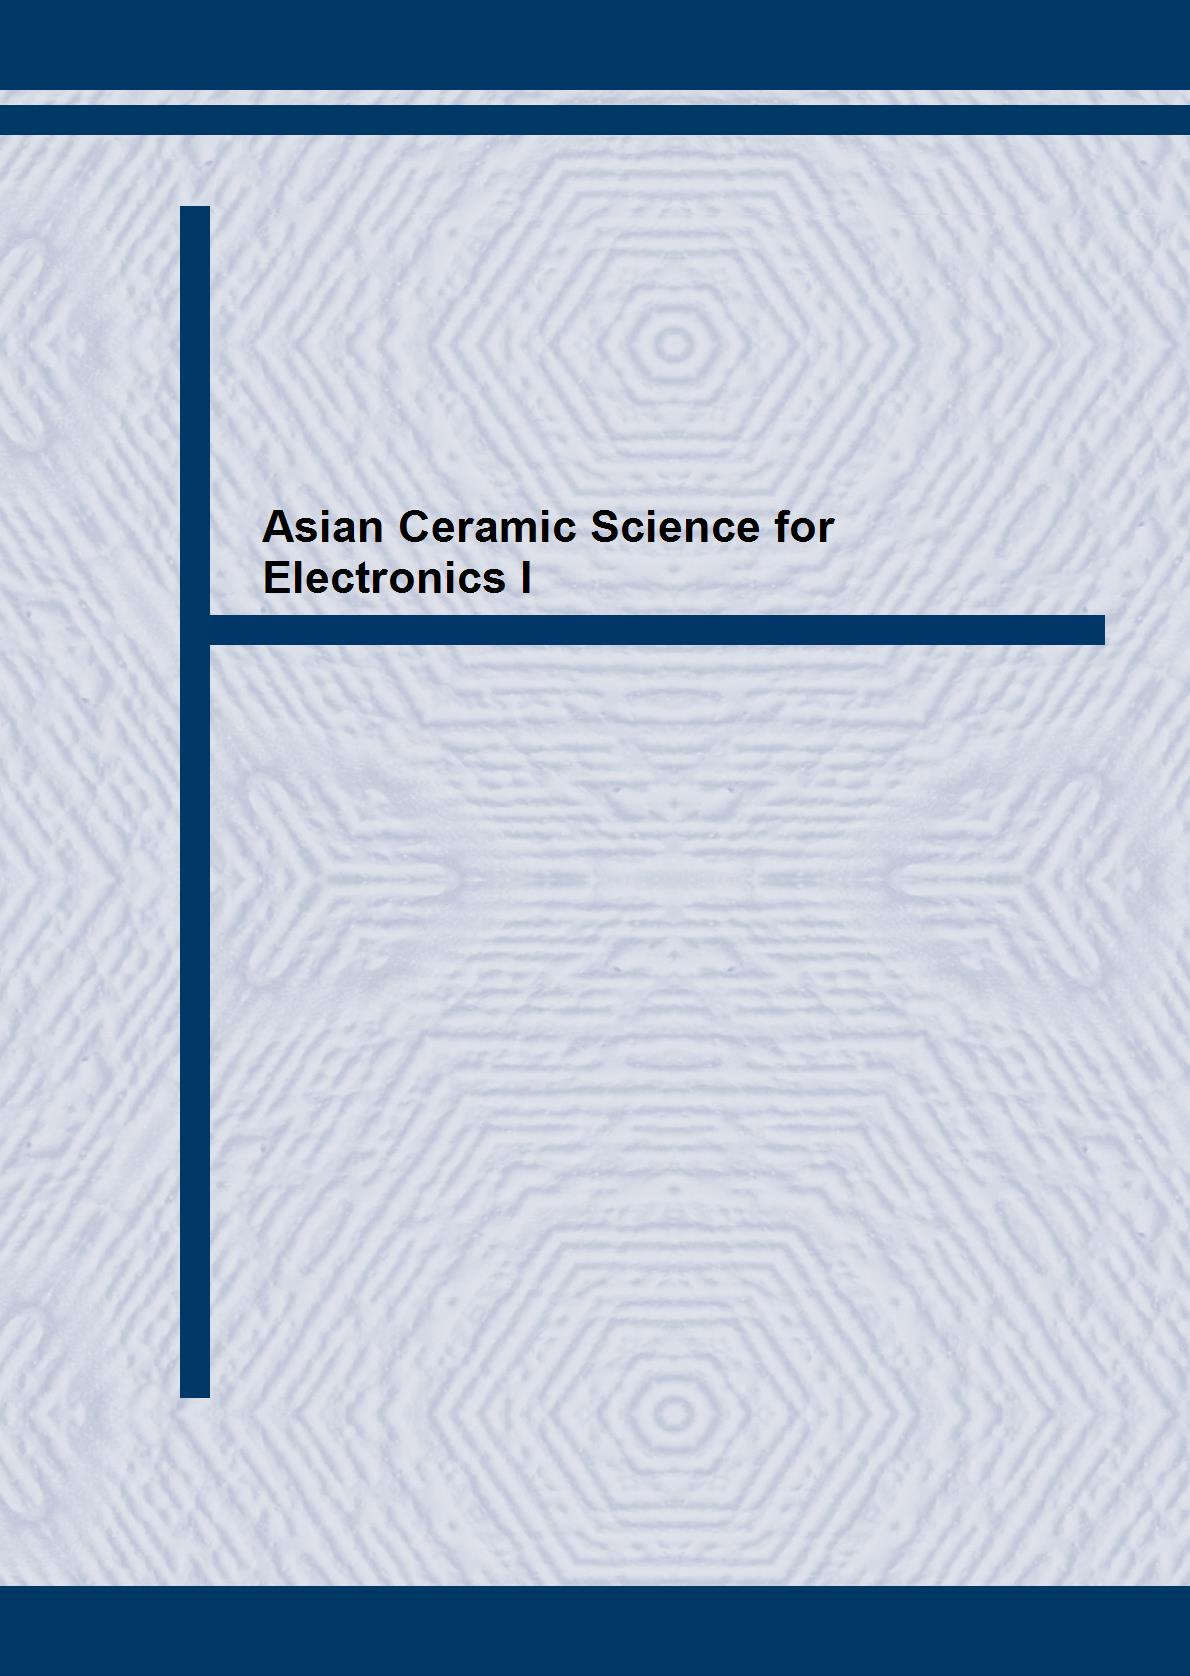 Asian Ceramic Science for Electronics I